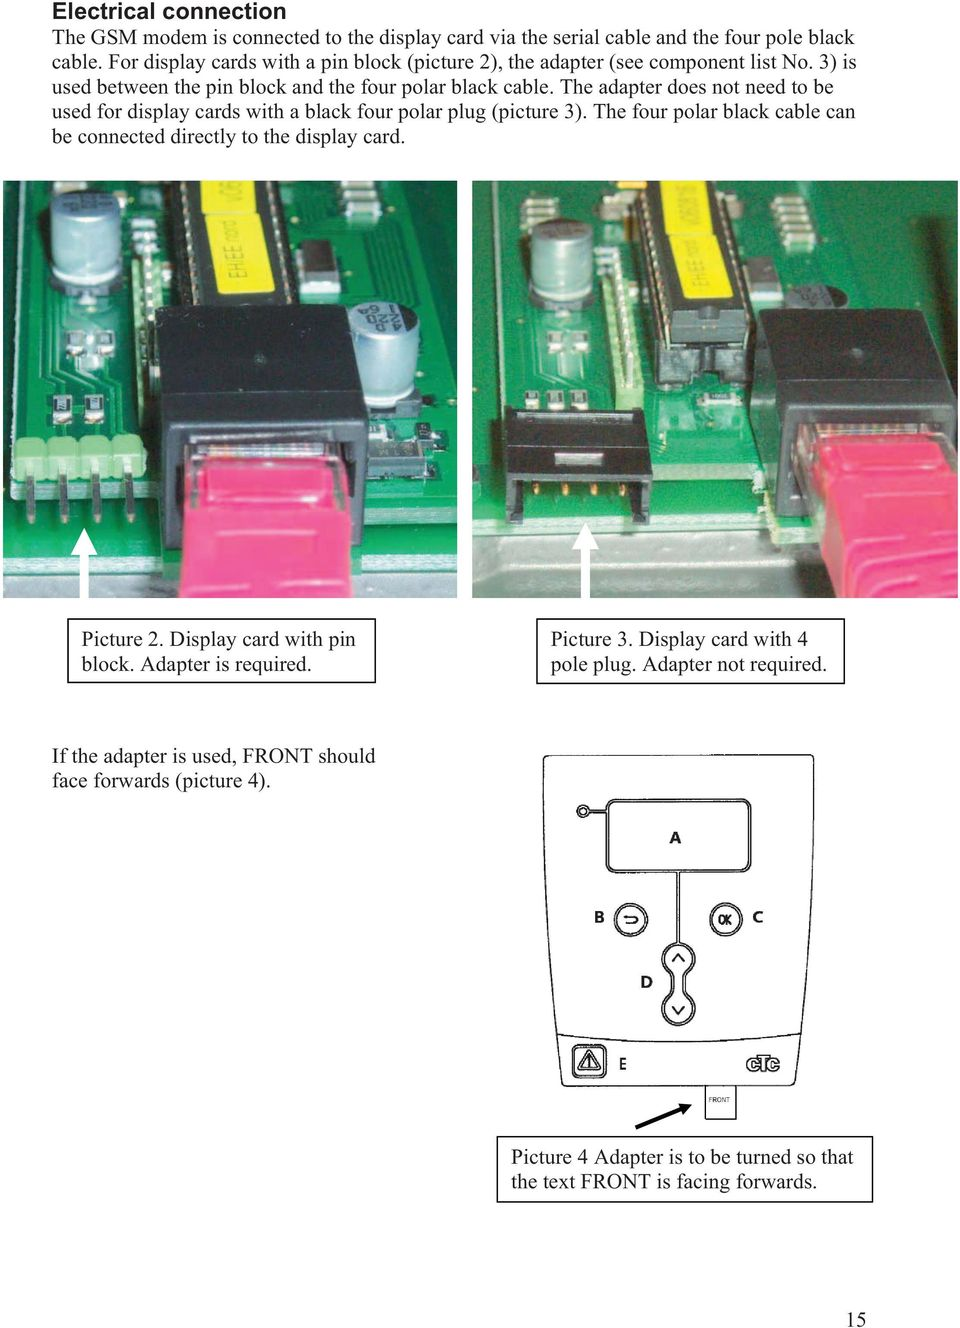 The adapter does not need to be used for display cards with a black four polar plug (picture 3). The four polar black cable can be connected directly to the display card.